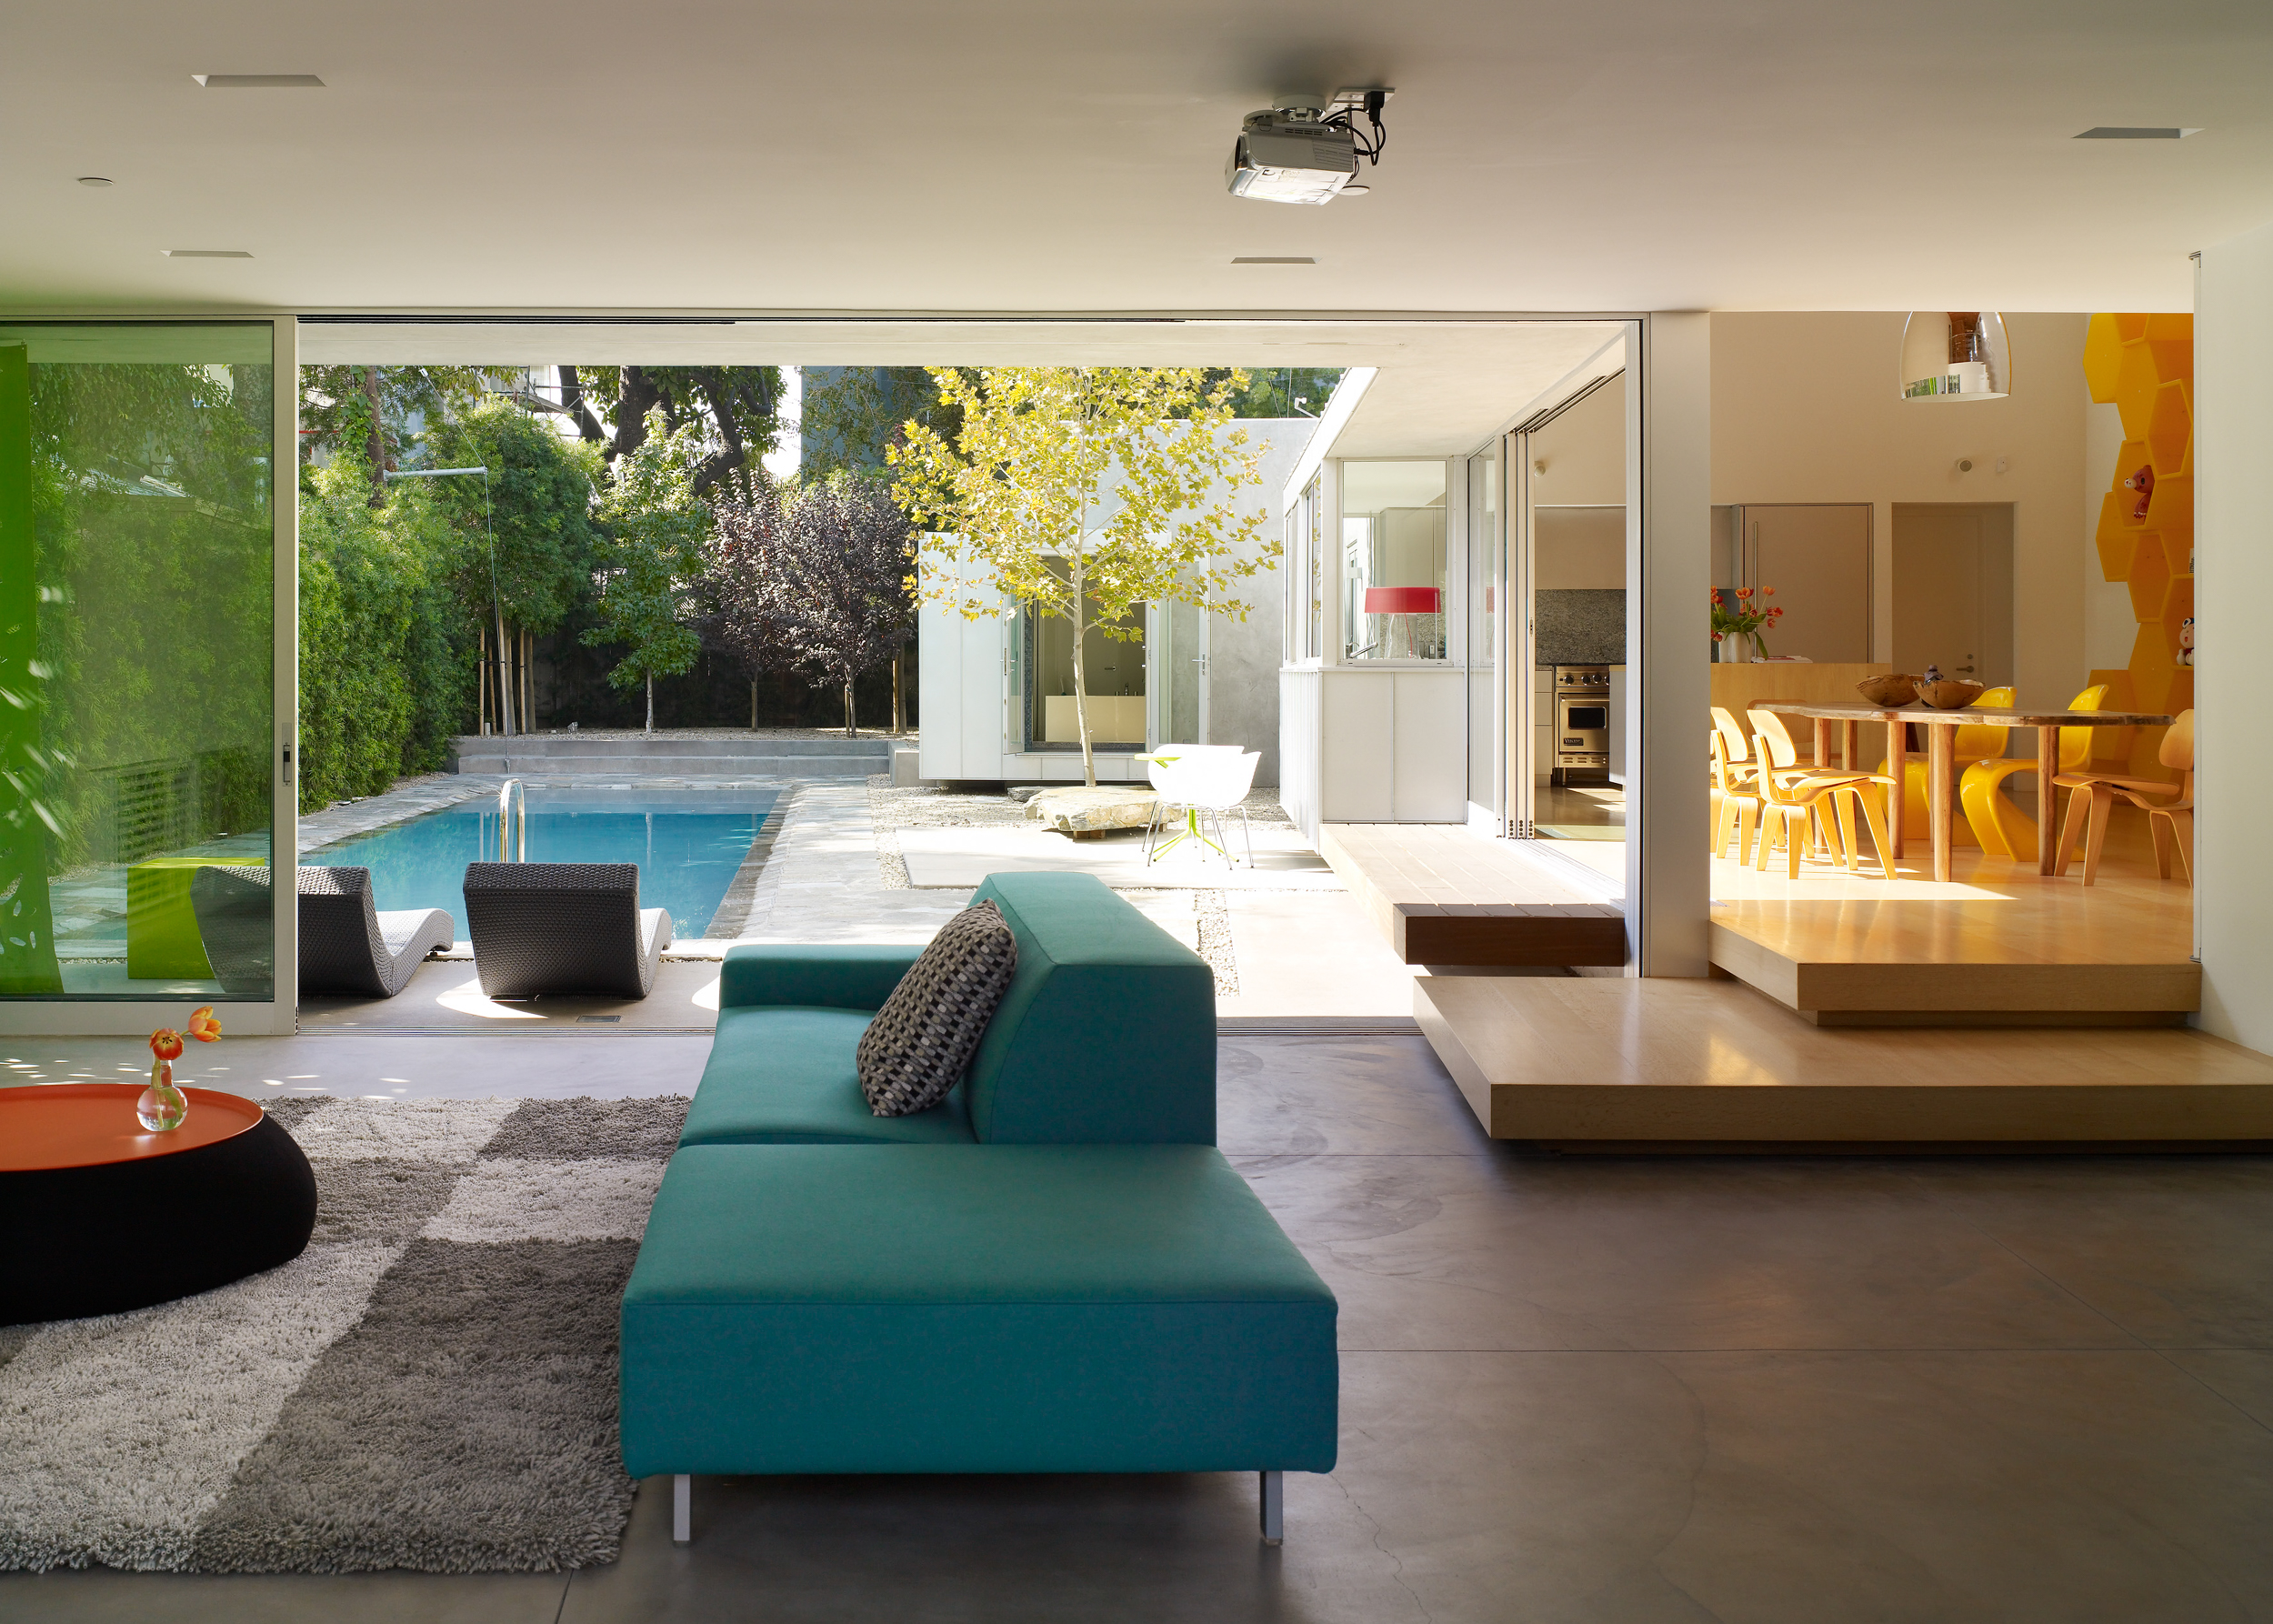 07 West Hollywood Residence